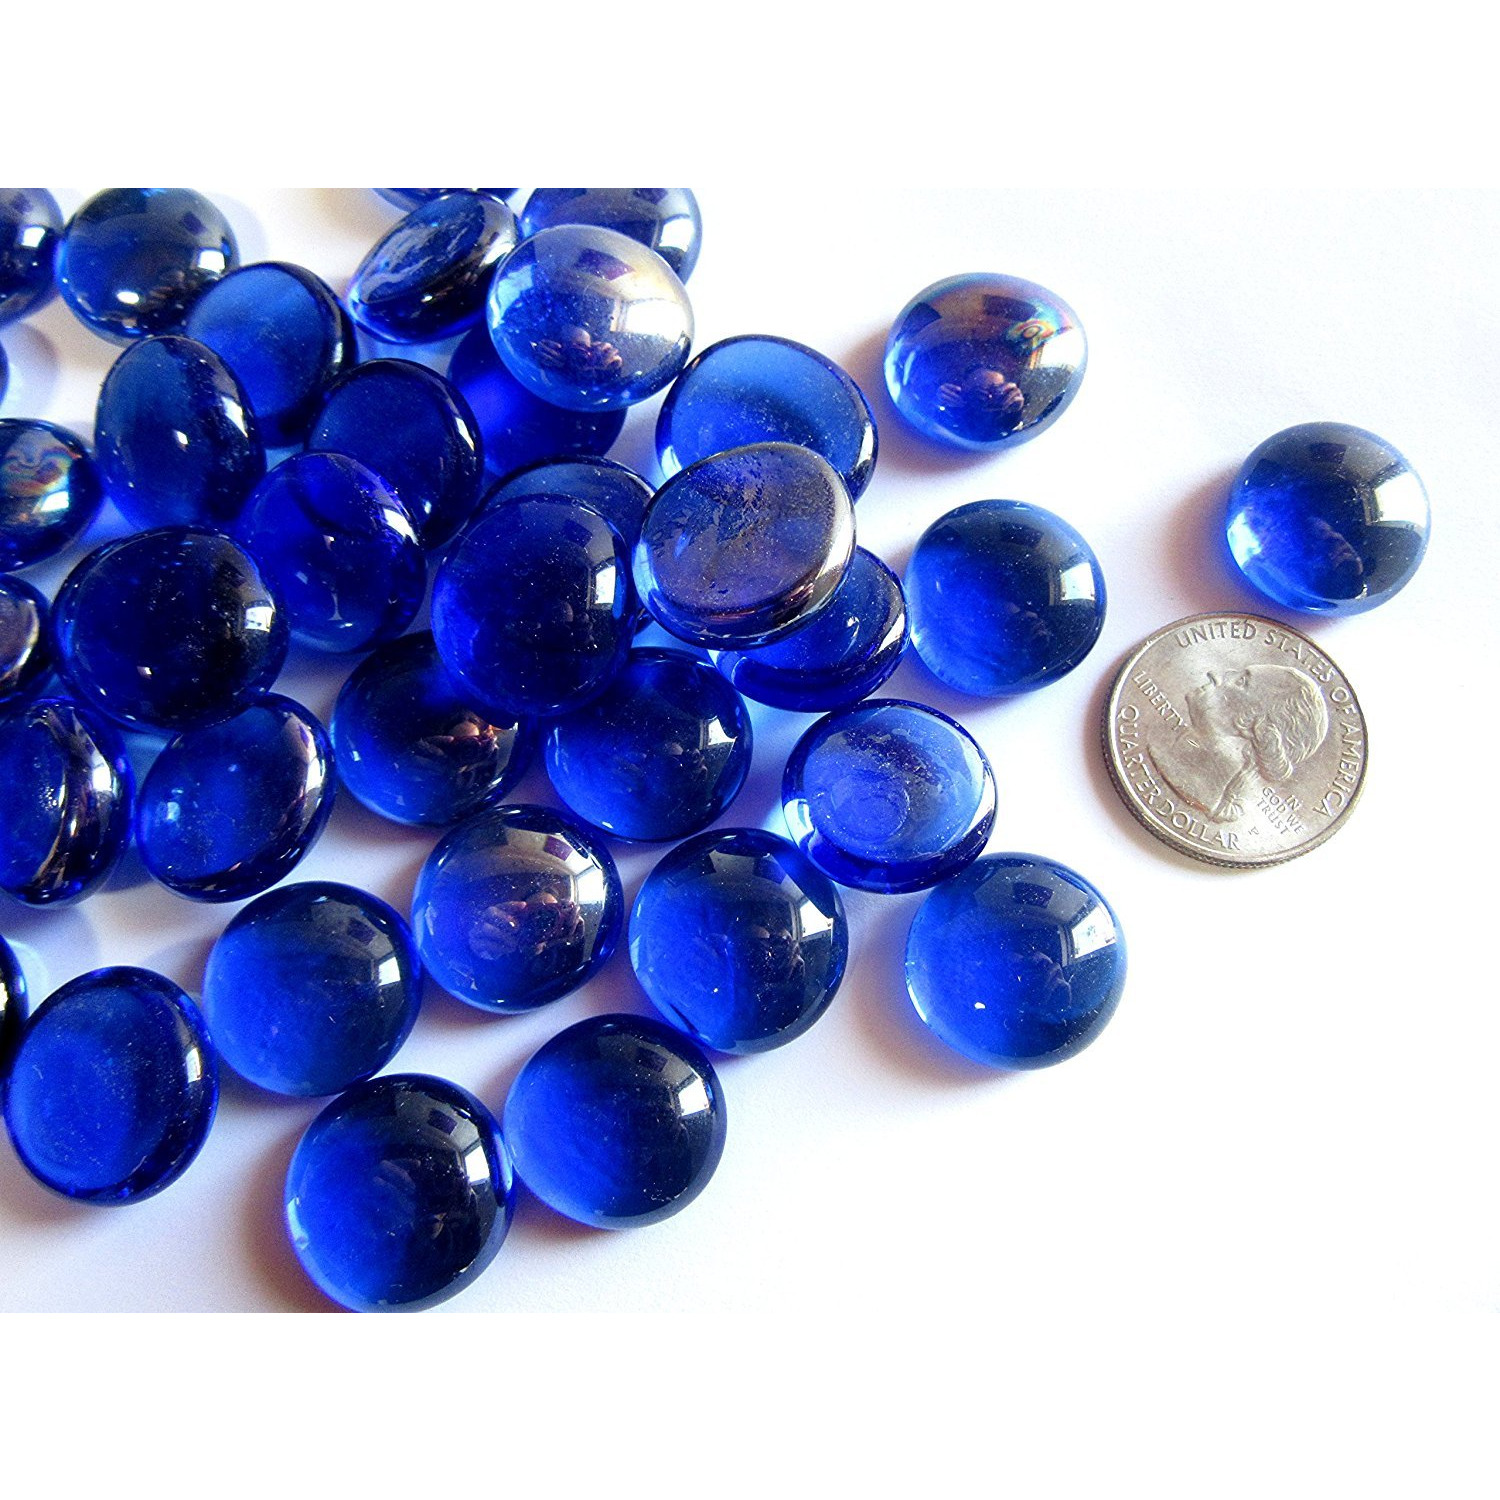 Blue Flat Marbles, Pebbles, Glass Gems for Vase Fillers, Party Table Scatter, Wedding, Decoration, Aquarium Decor, Crystal Rocks, or Crafts 100 PCS